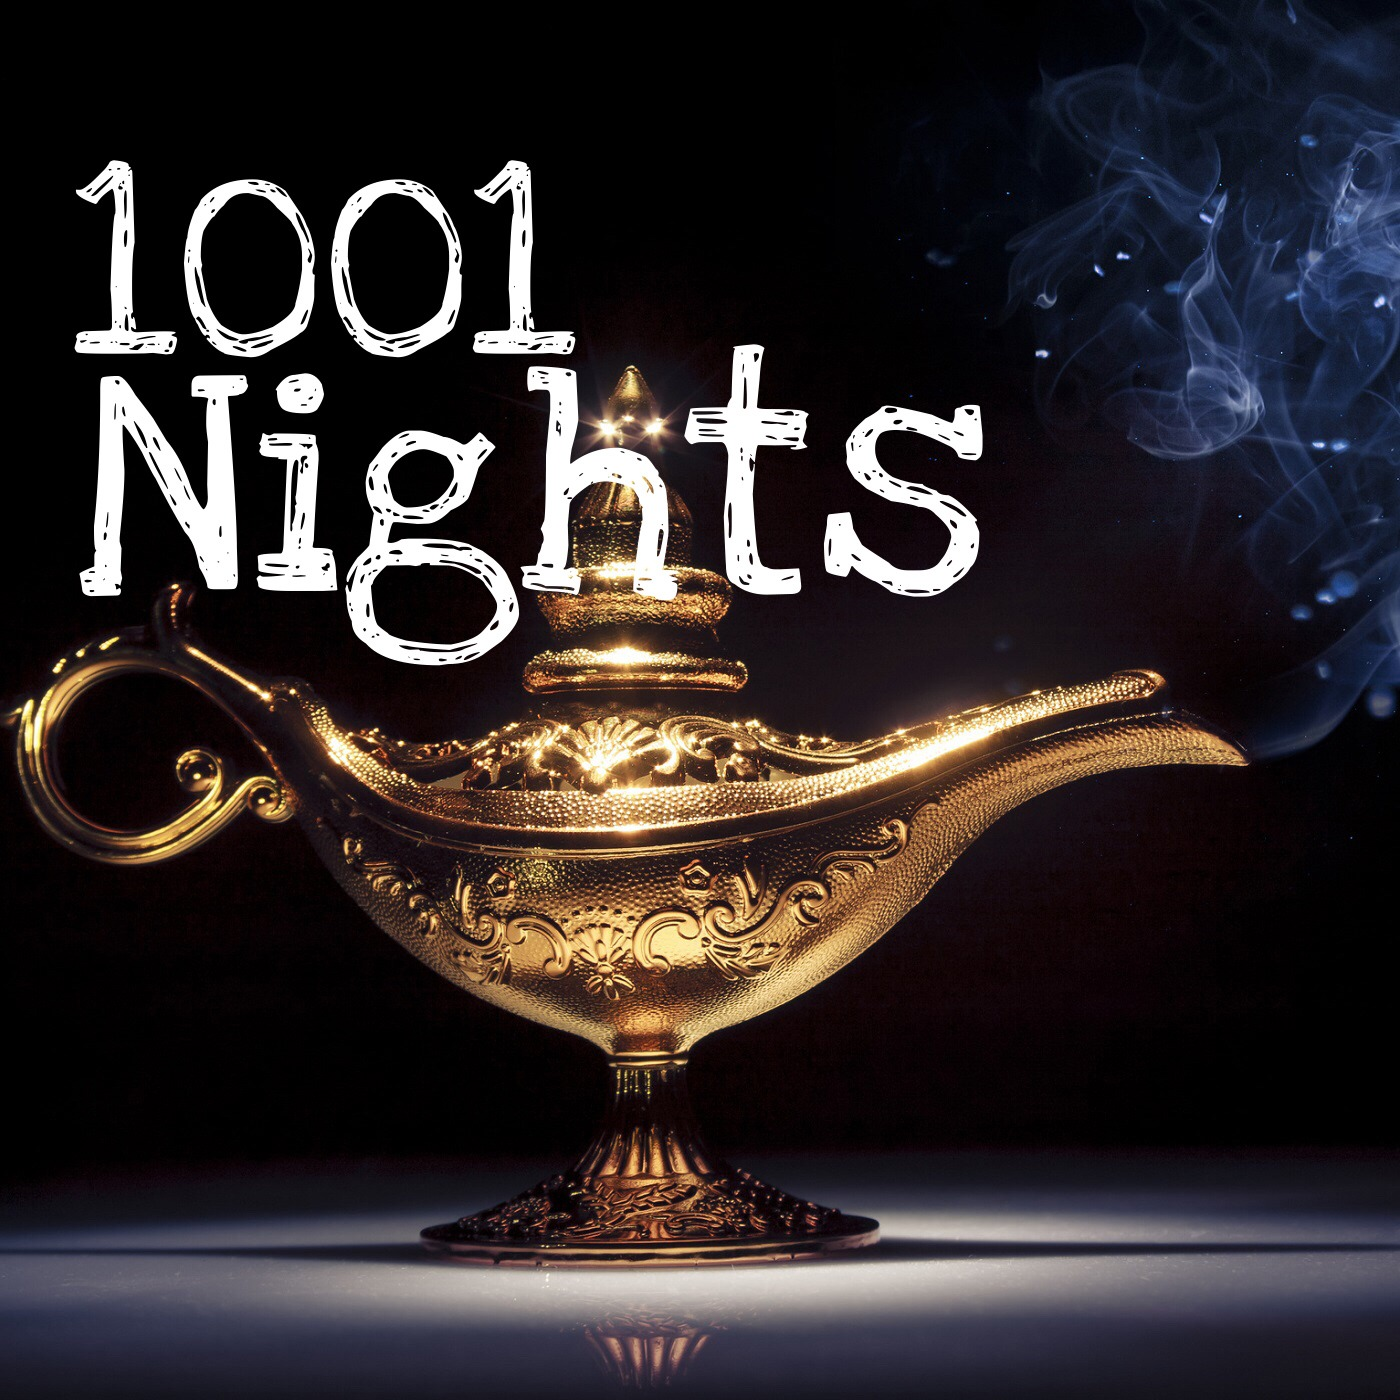 1001 Nights Ep. 3 - The Sheiks' Stories, Vol. I